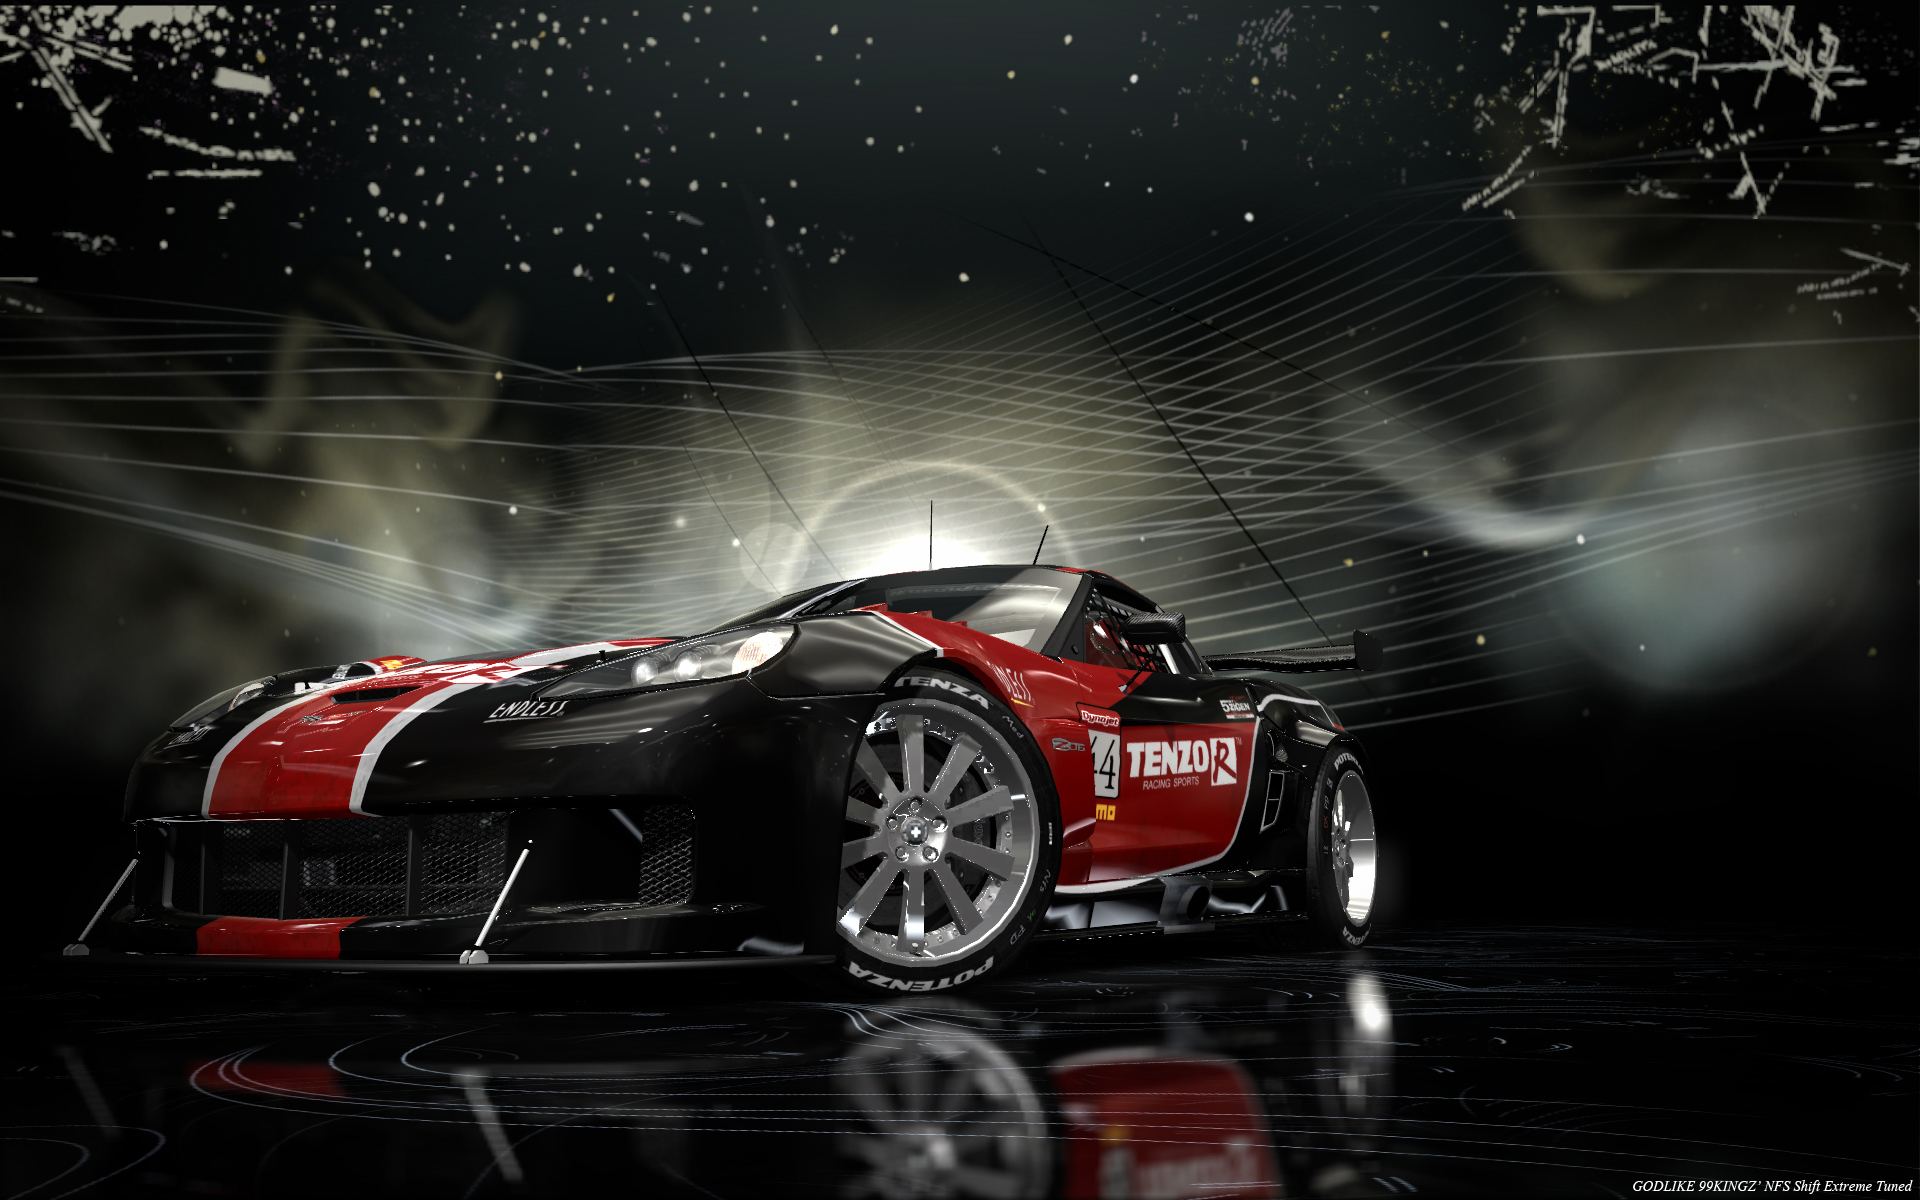 Black Car Wallpaper For Mobile: Red And Black Race Cars 6 Hd Wallpaper